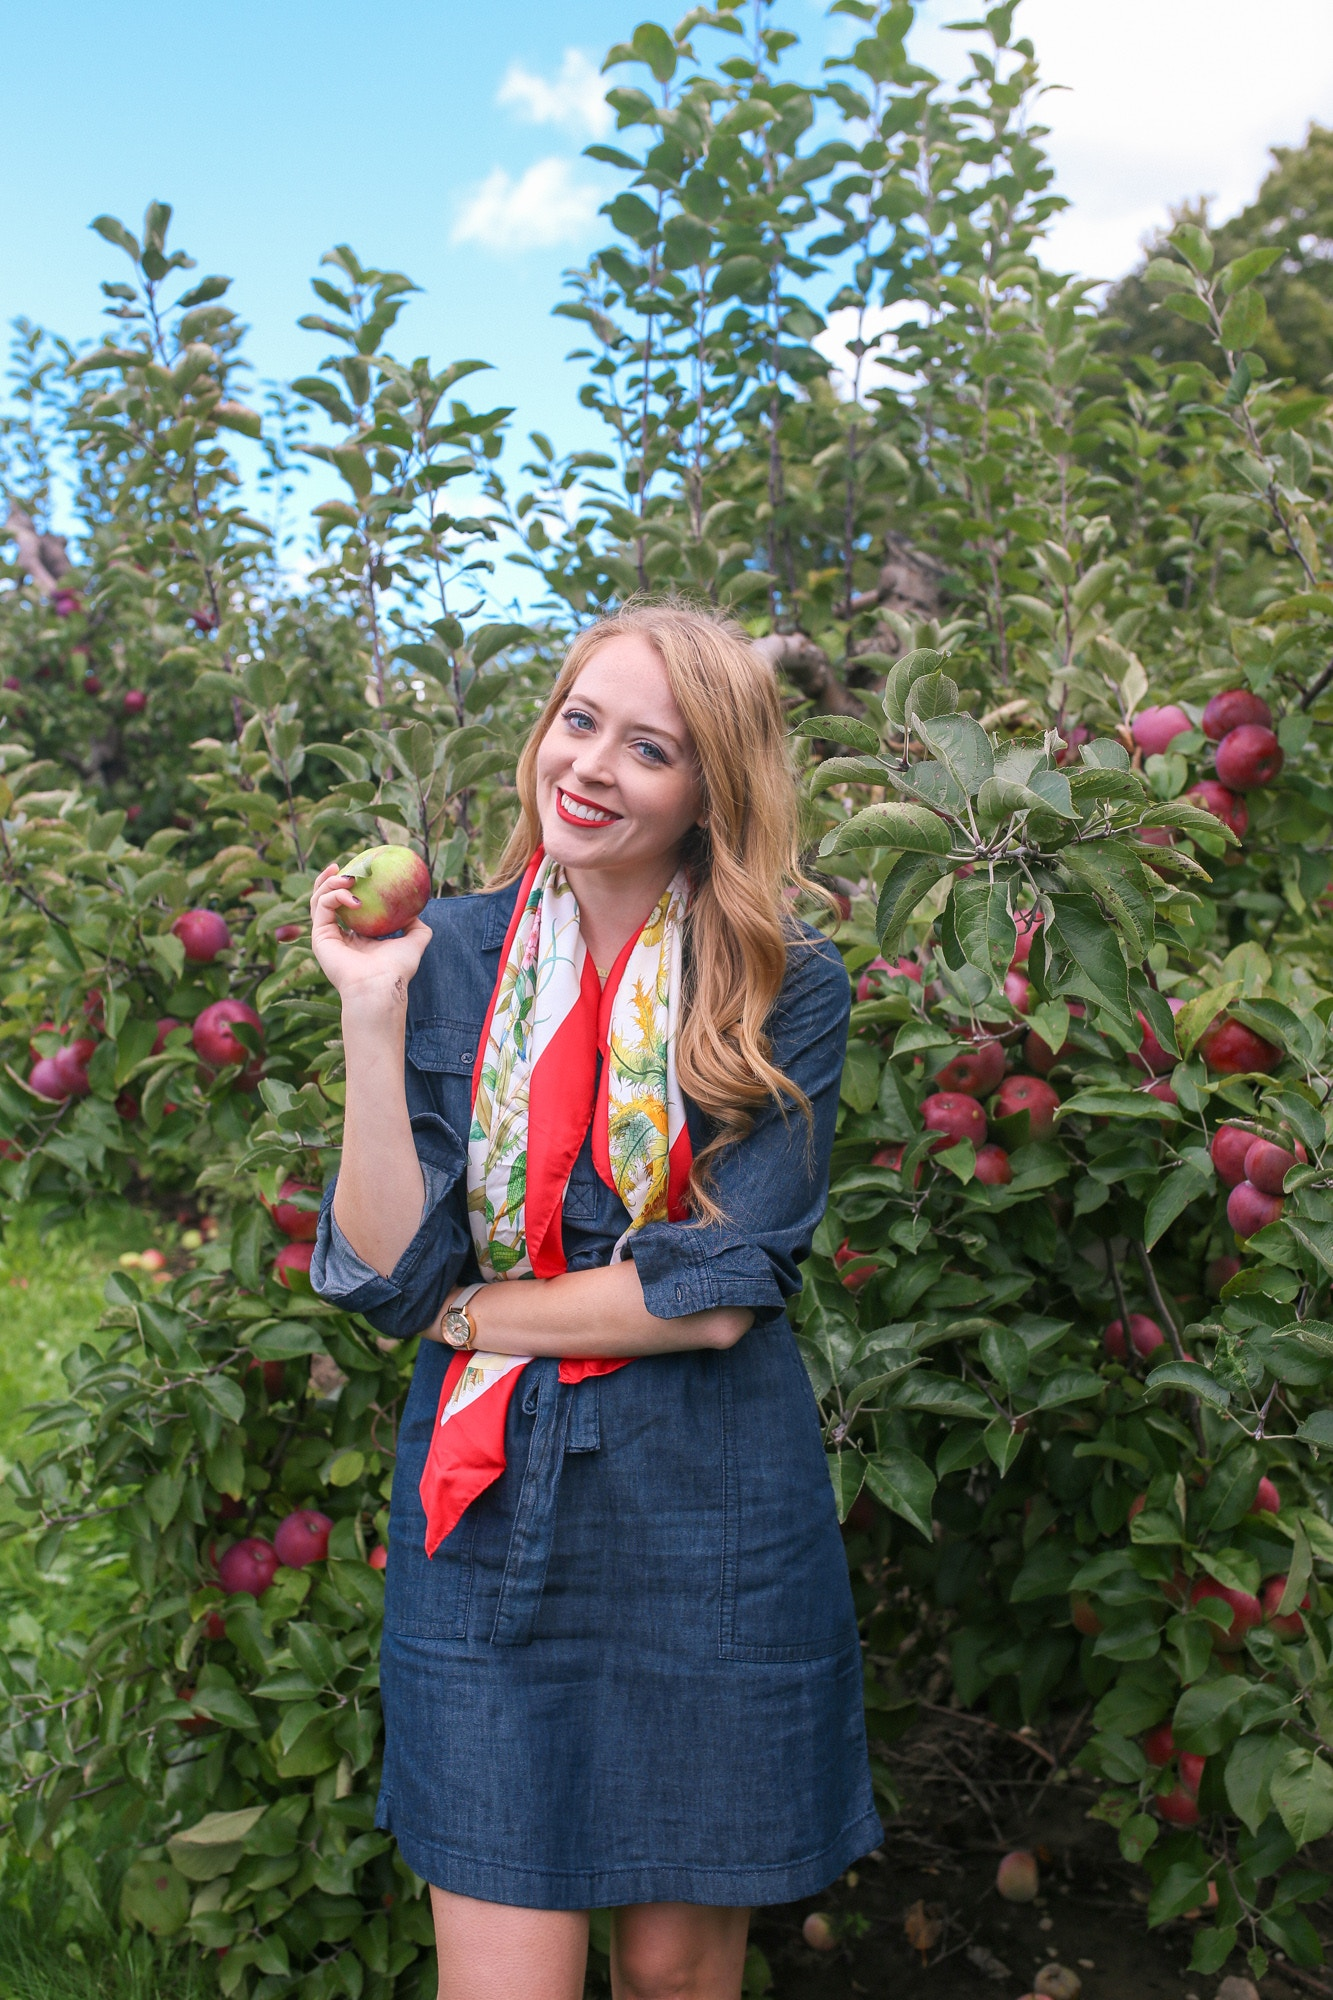 Apple picking outfit: a casual denim dress is more sophisticated with a vintage silk scarf in a festive fall colour.